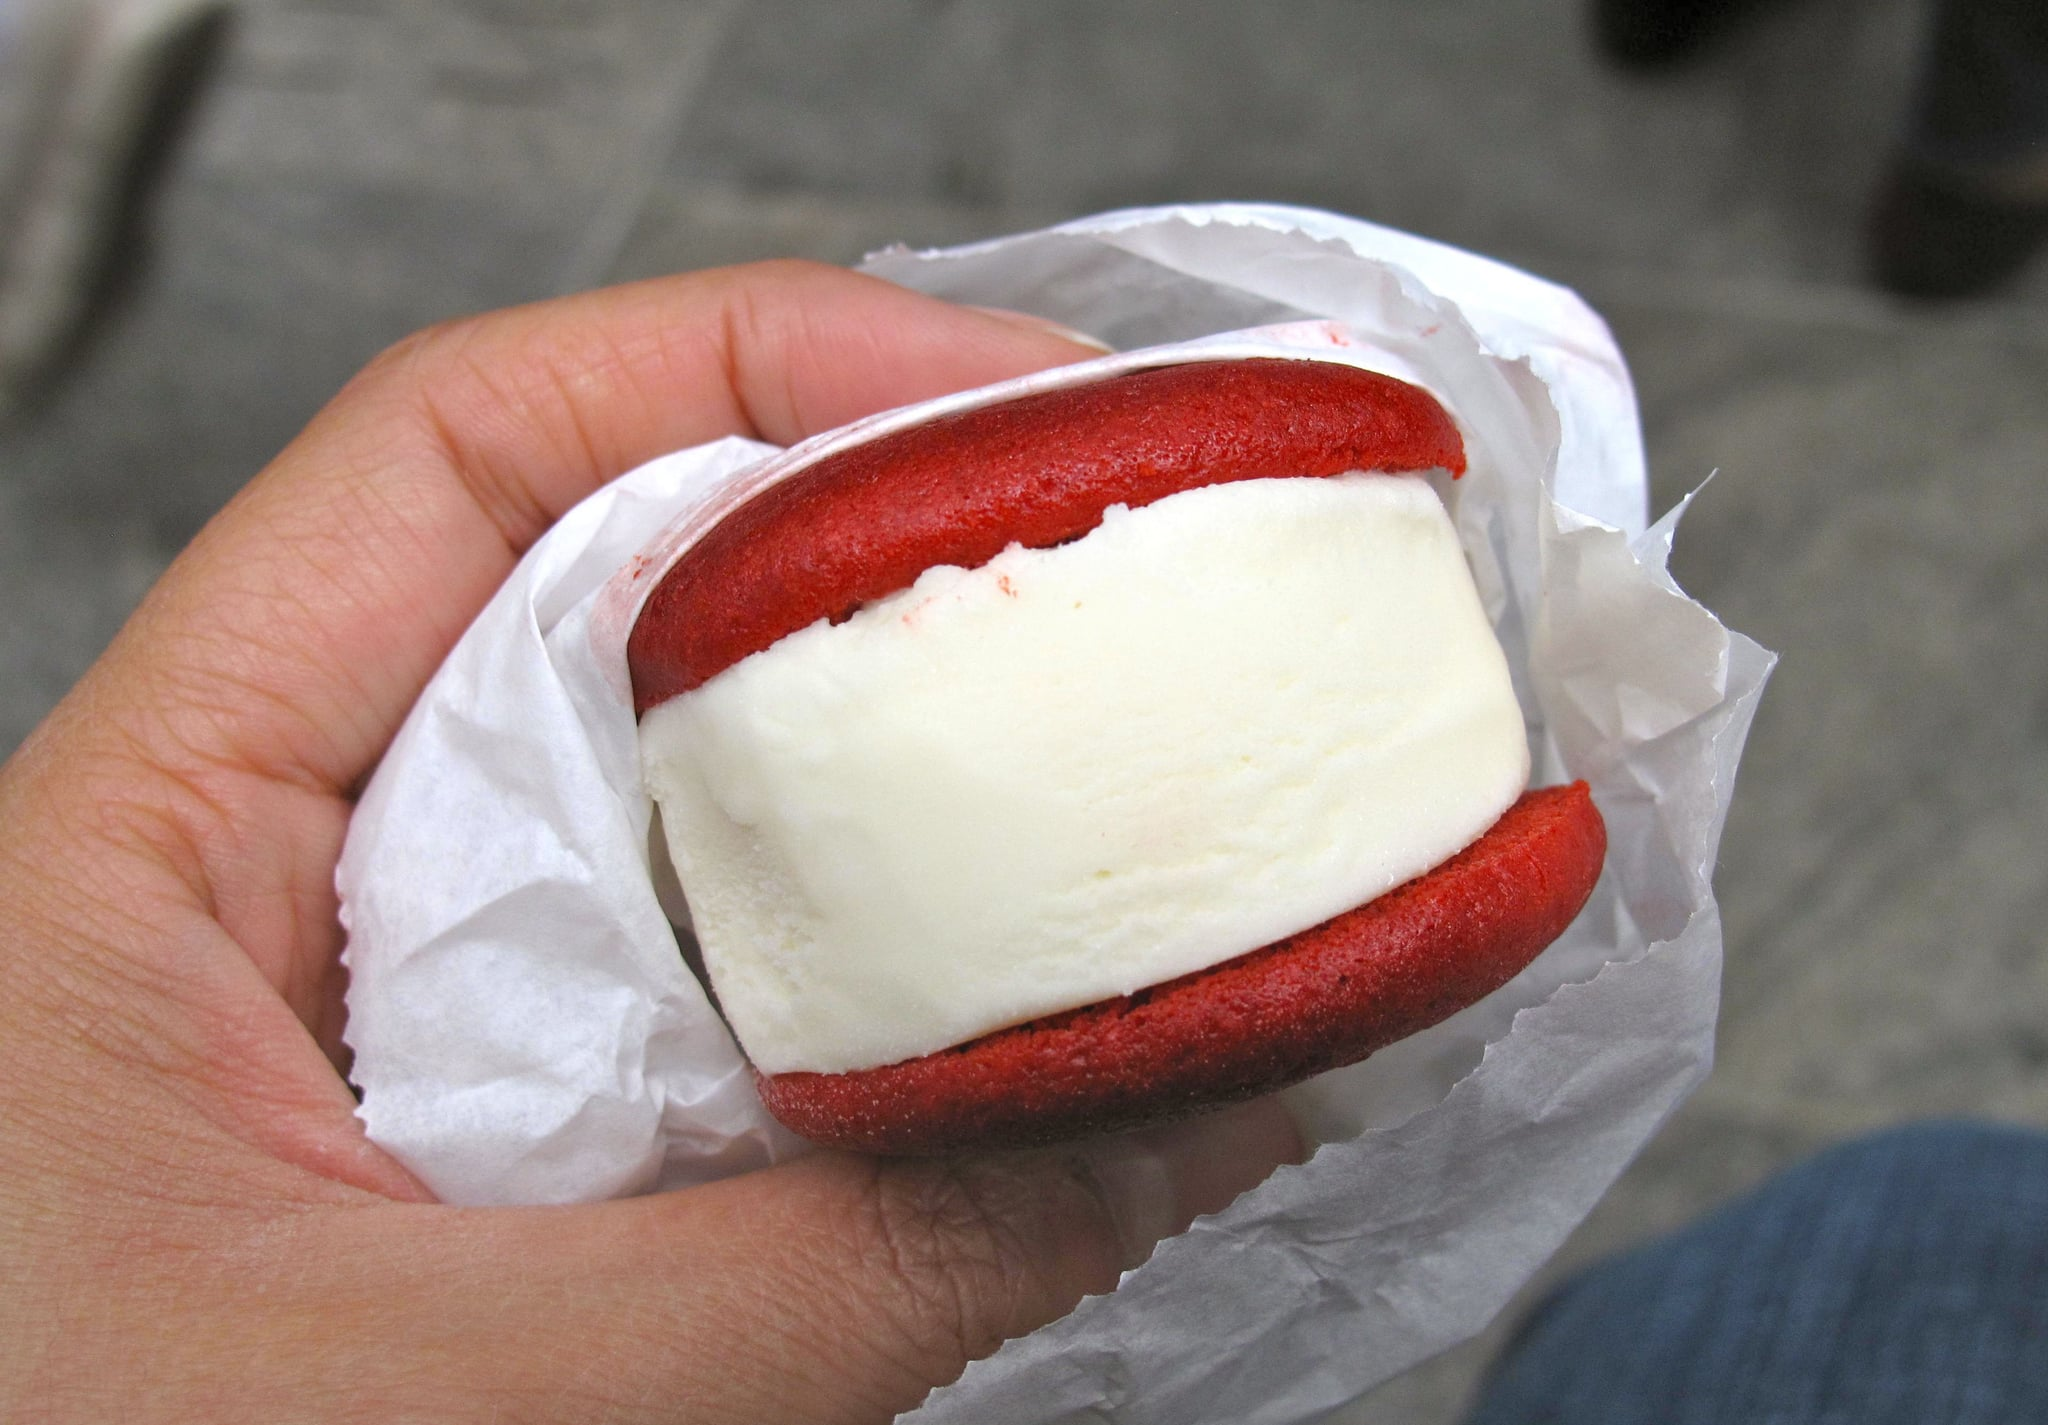 Red Velvet Whoopie Pie Ice Cream Sandwich